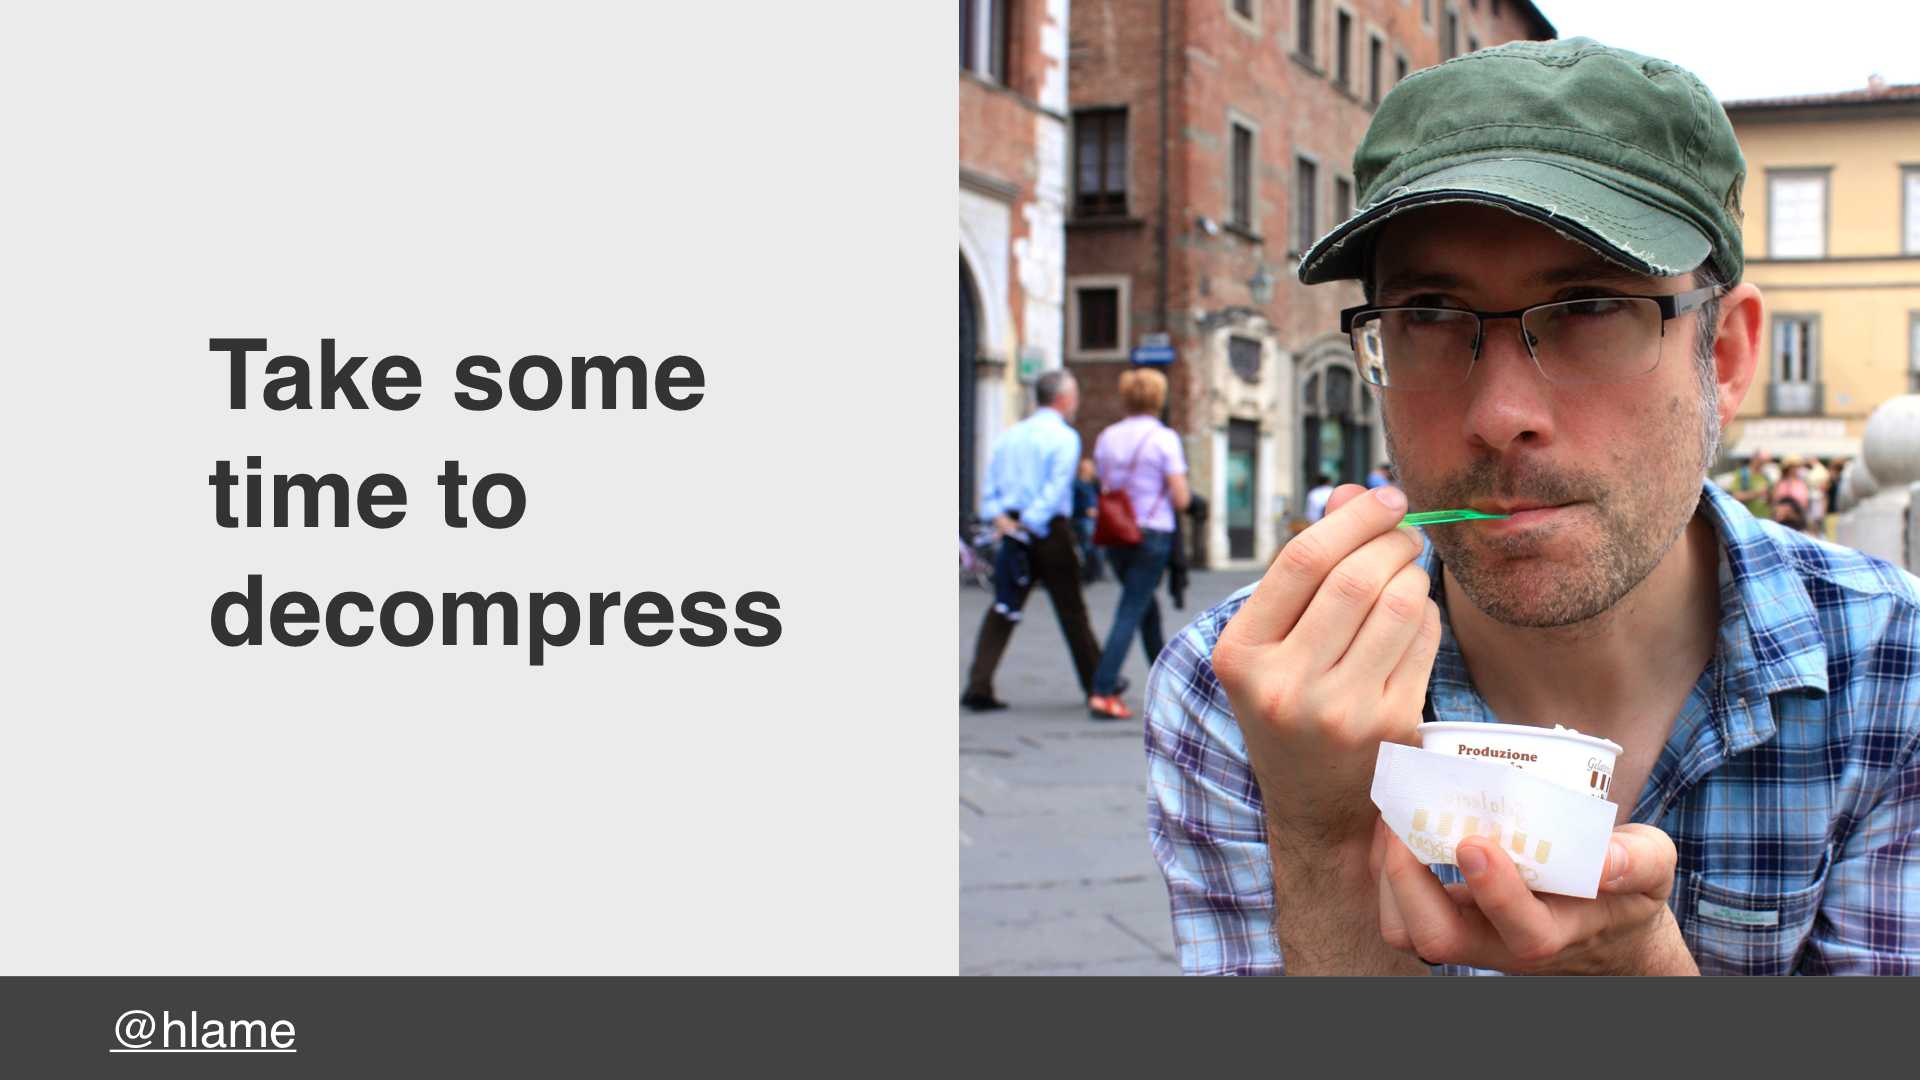 A photo of someone eating gelato in an Italian Piazza - text: Take some time to decompress